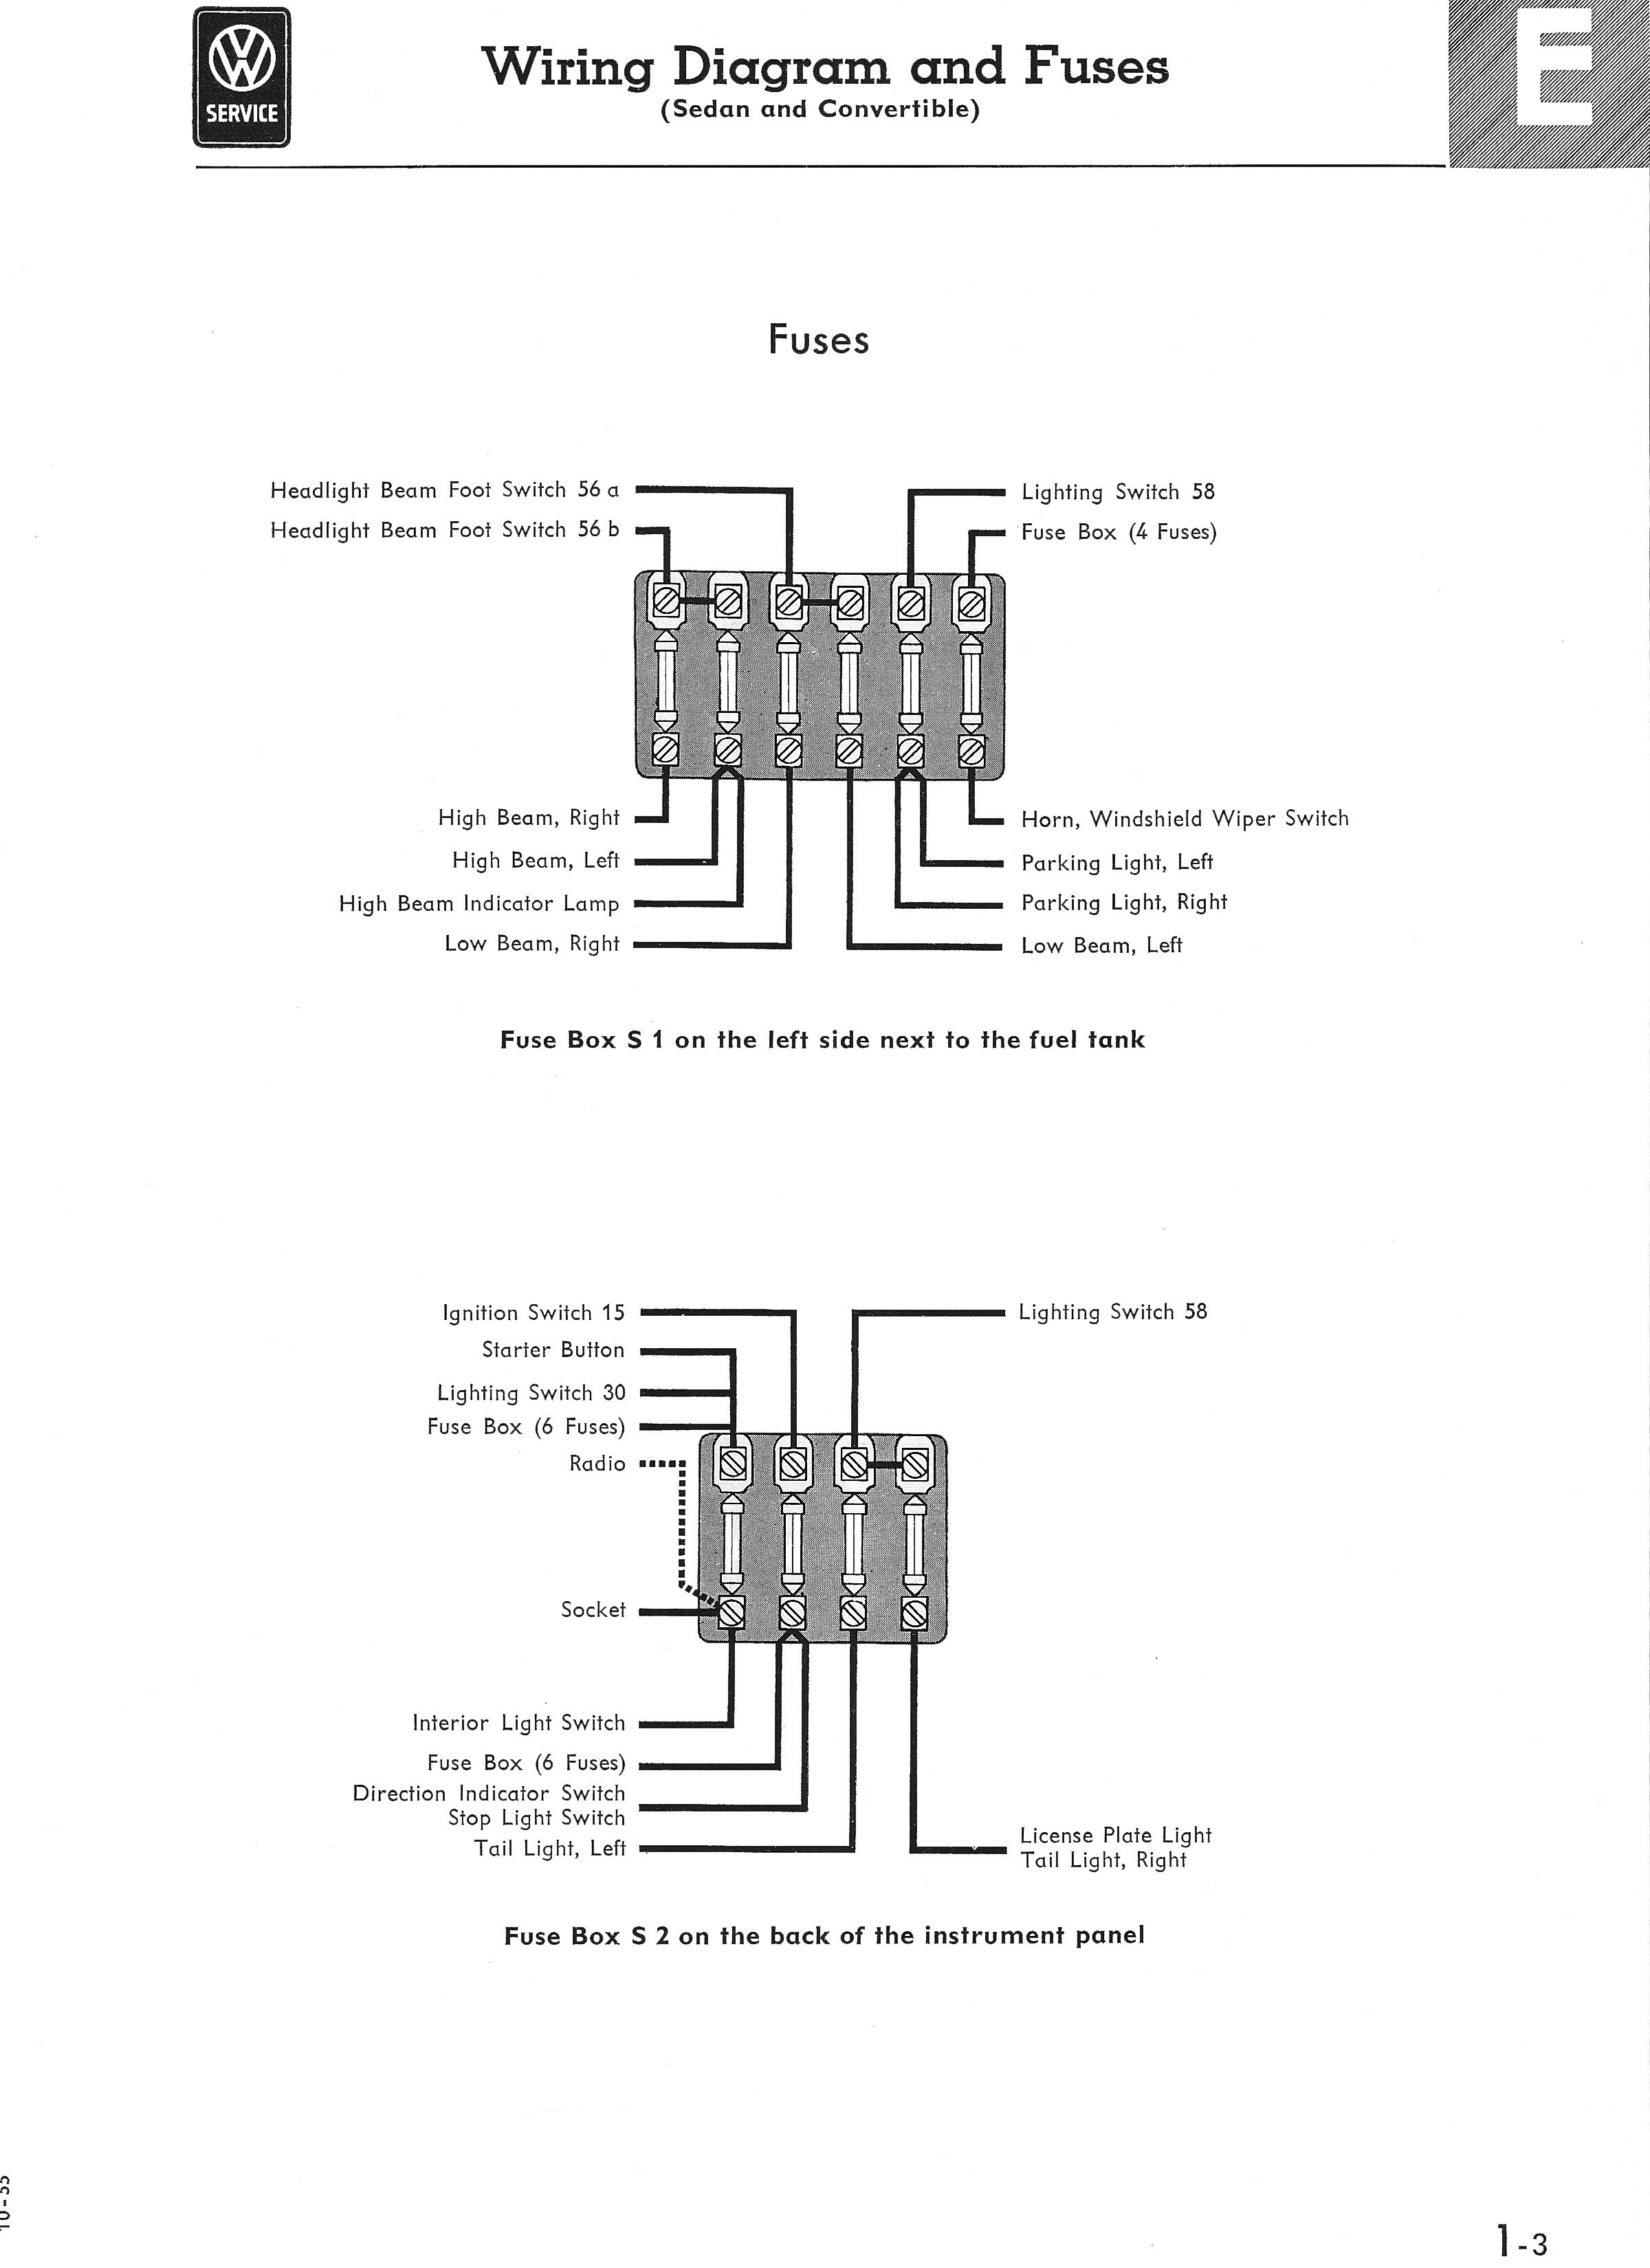 Mini Fuse Box Wiring - Wiring Diagrams Hubs - Electrical Outlet Wiring Diagram